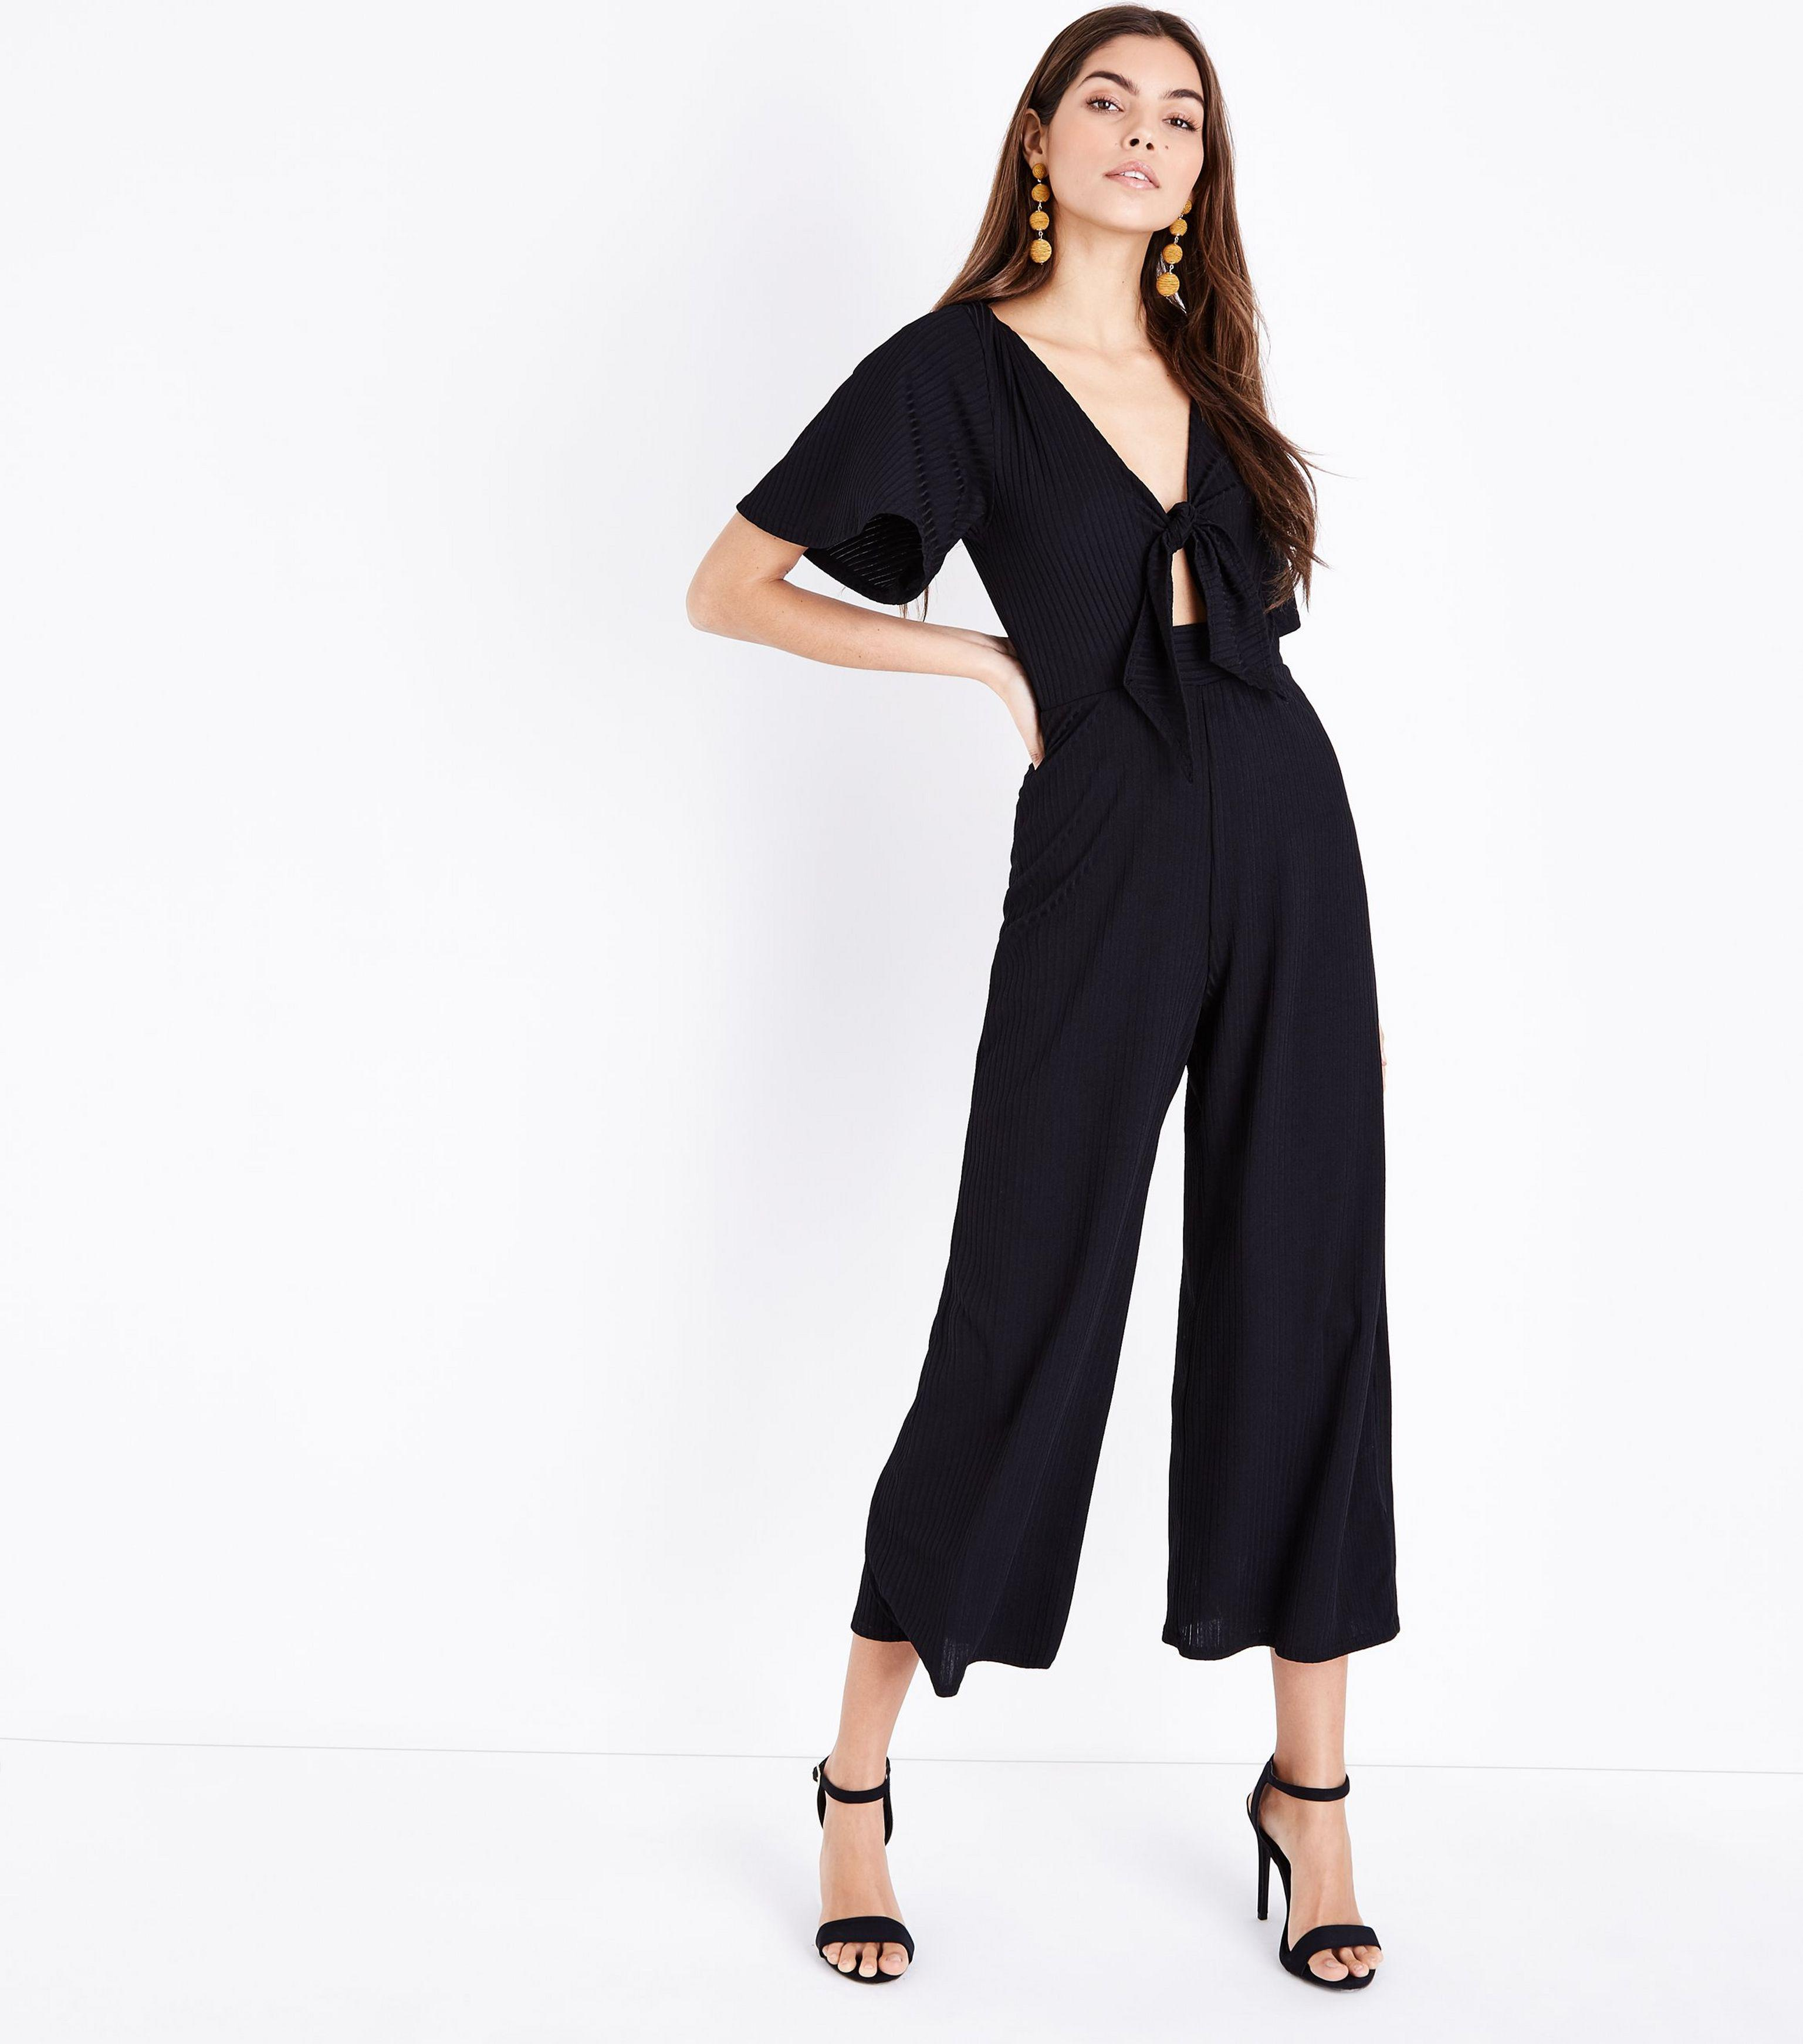 3a0c7f6f7c New Look Tall Black Tie Front Ribbed Culotte Jumpsuit in Black - Lyst